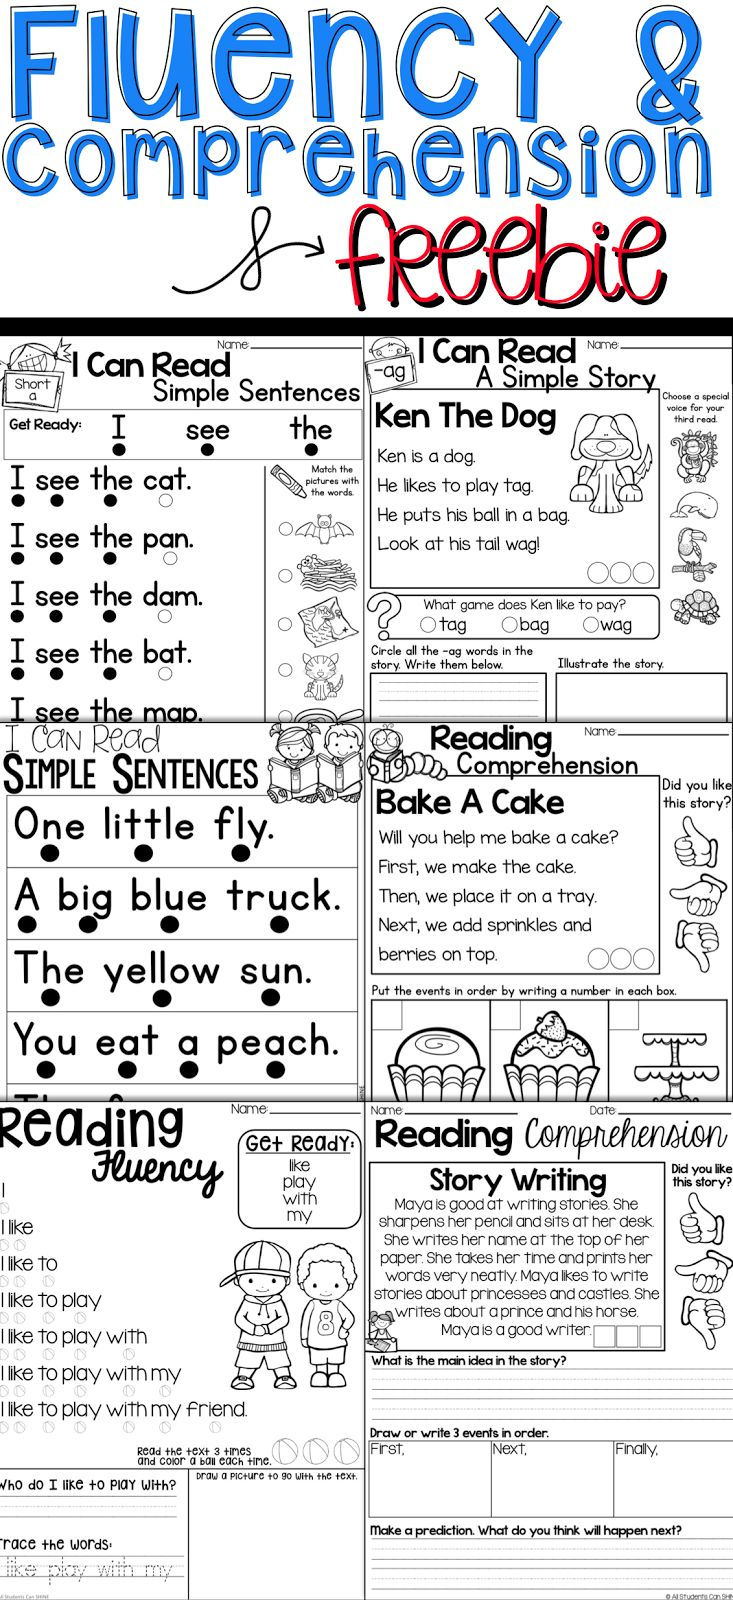 Worksheet Comprehension 2nd Grade 10 ideas about 2nd grade reading comprehension on pinterest hi everyone have you tried out my fluency freebie yet it intervention activities2nd grade